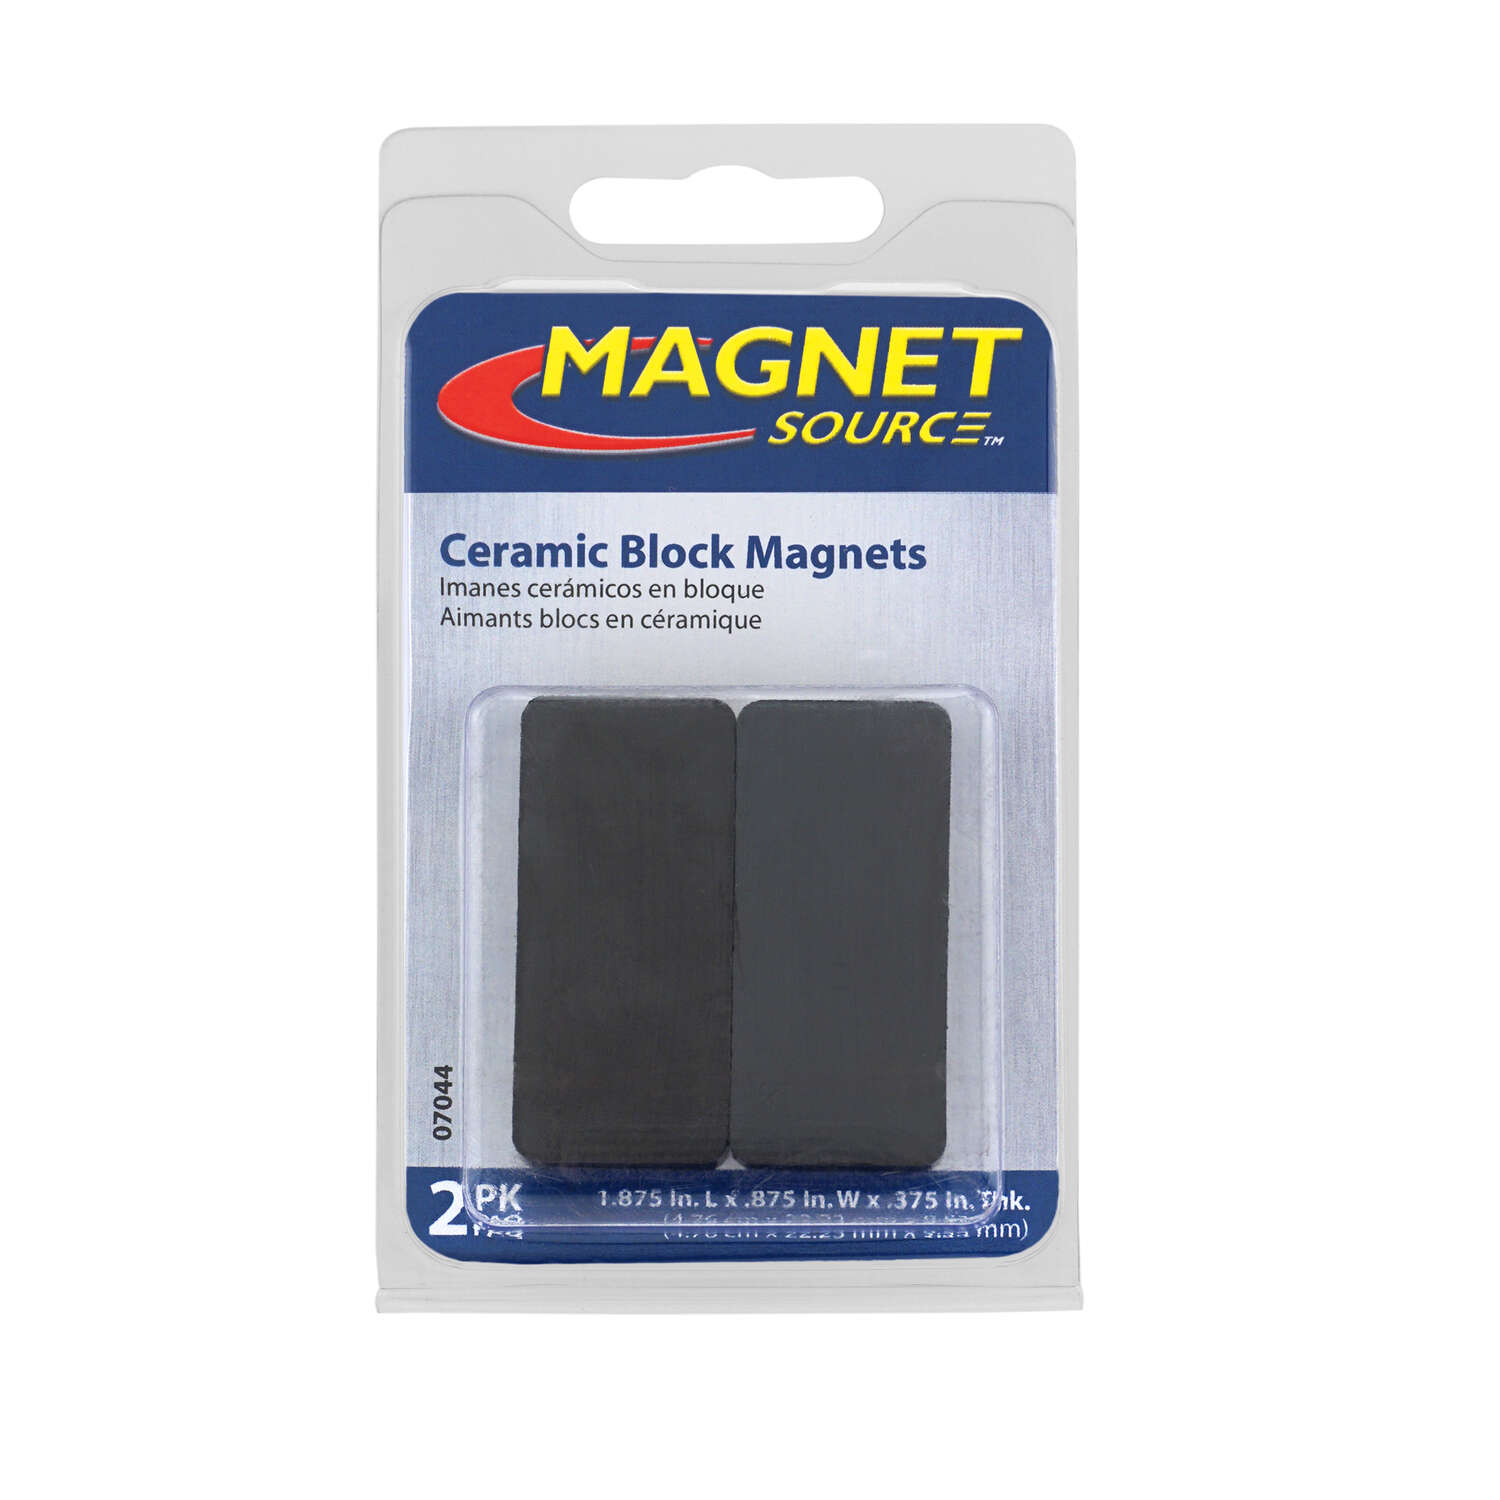 Master Magnetics  The Magnet Source  1.875 in. Ceramic  Block  Block Magnets  3.4 MGOe Black  2 pc.